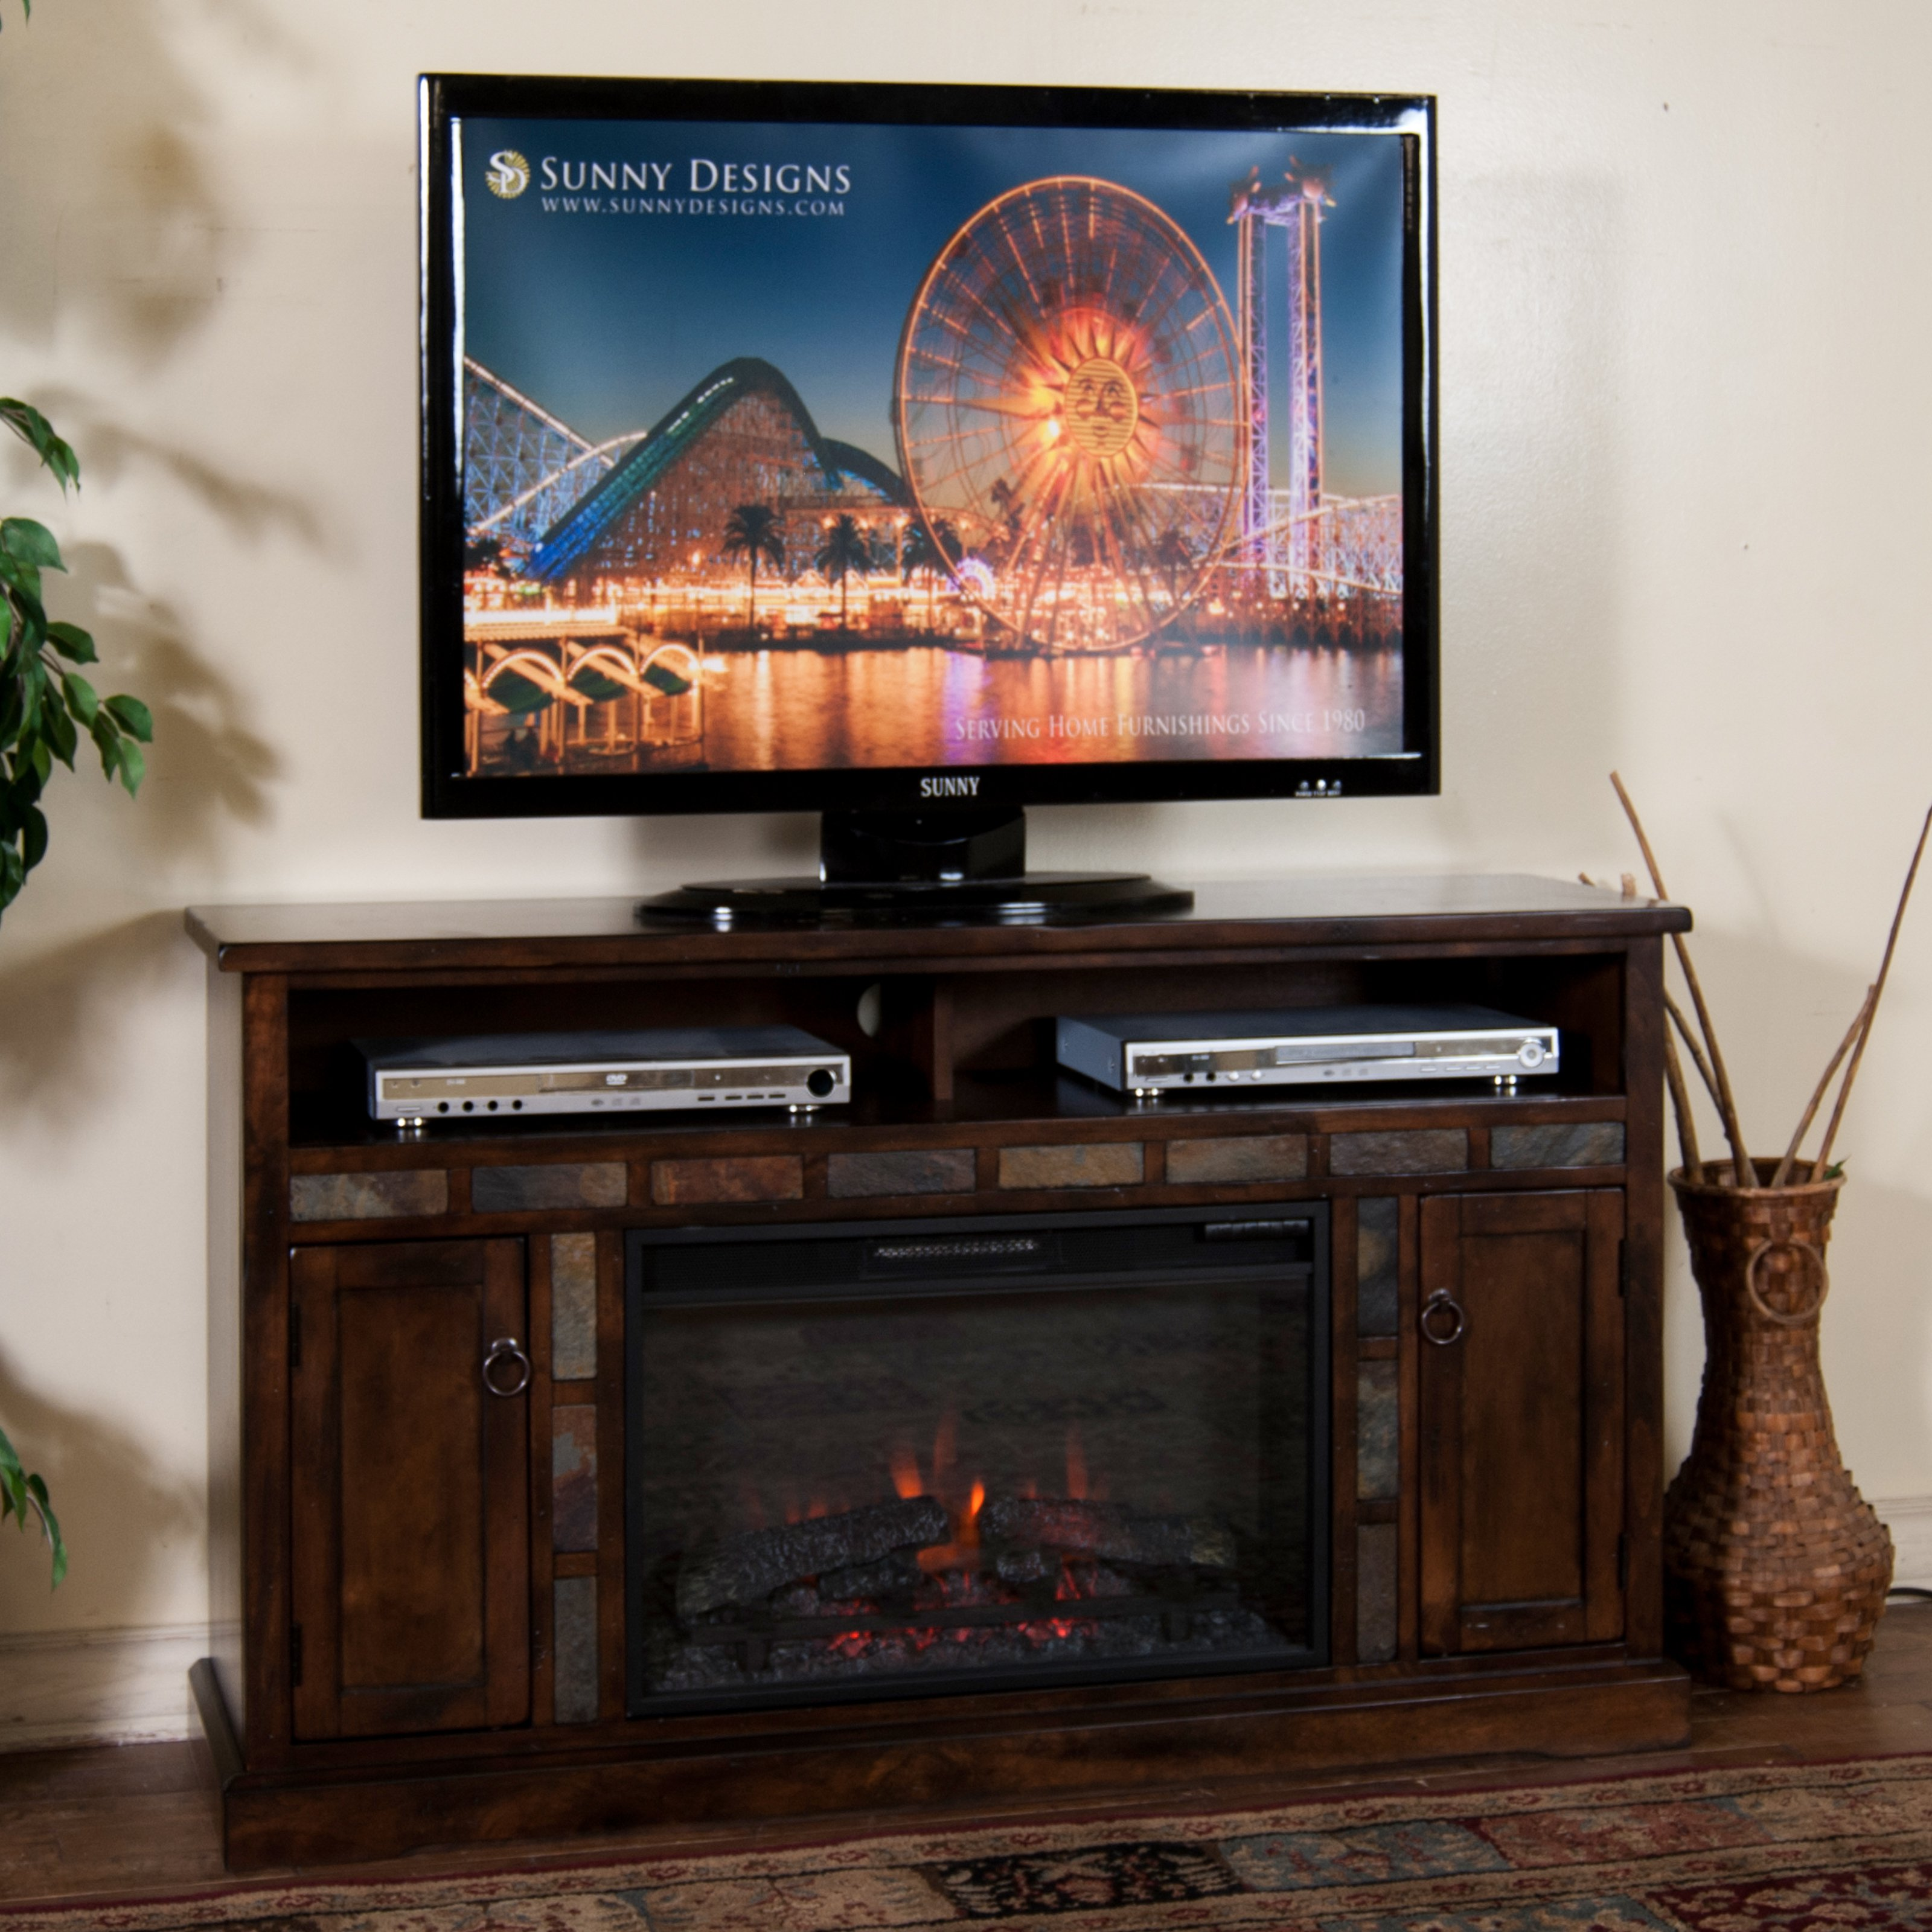 Sunny Designs Santa Fe 54 in. Electric Fireplace Media Console